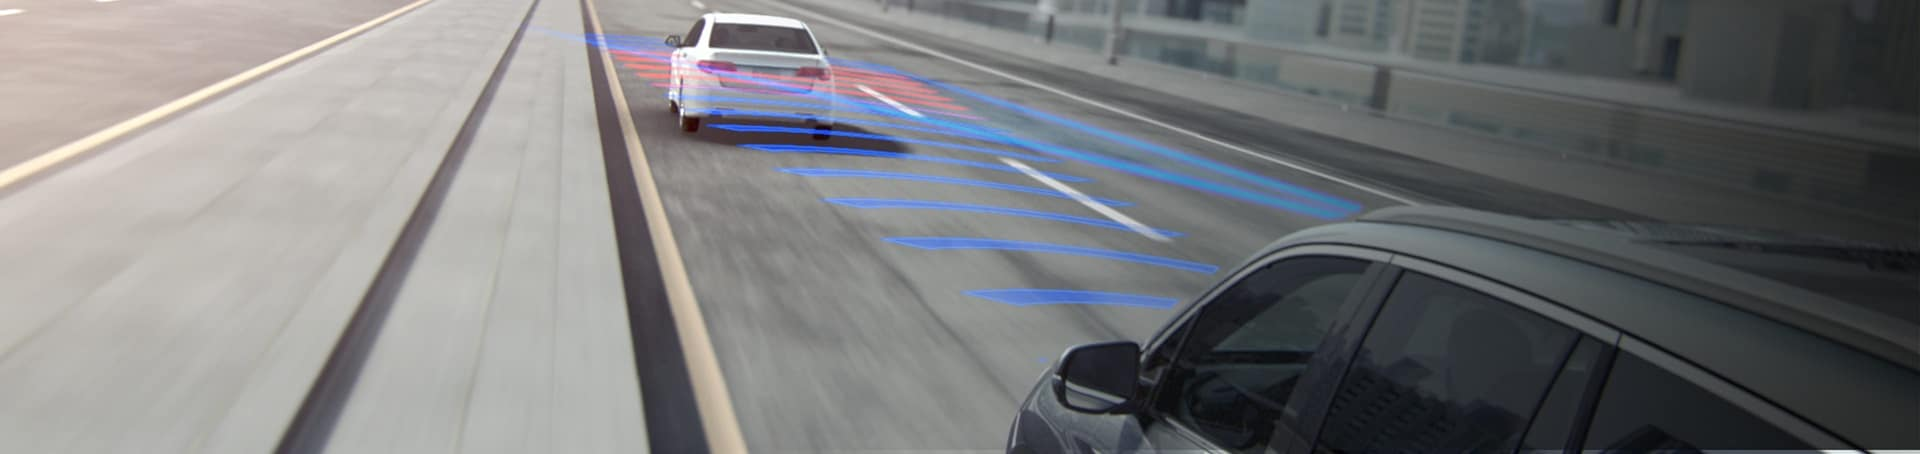 Honda Sensing Forward Collision Warning